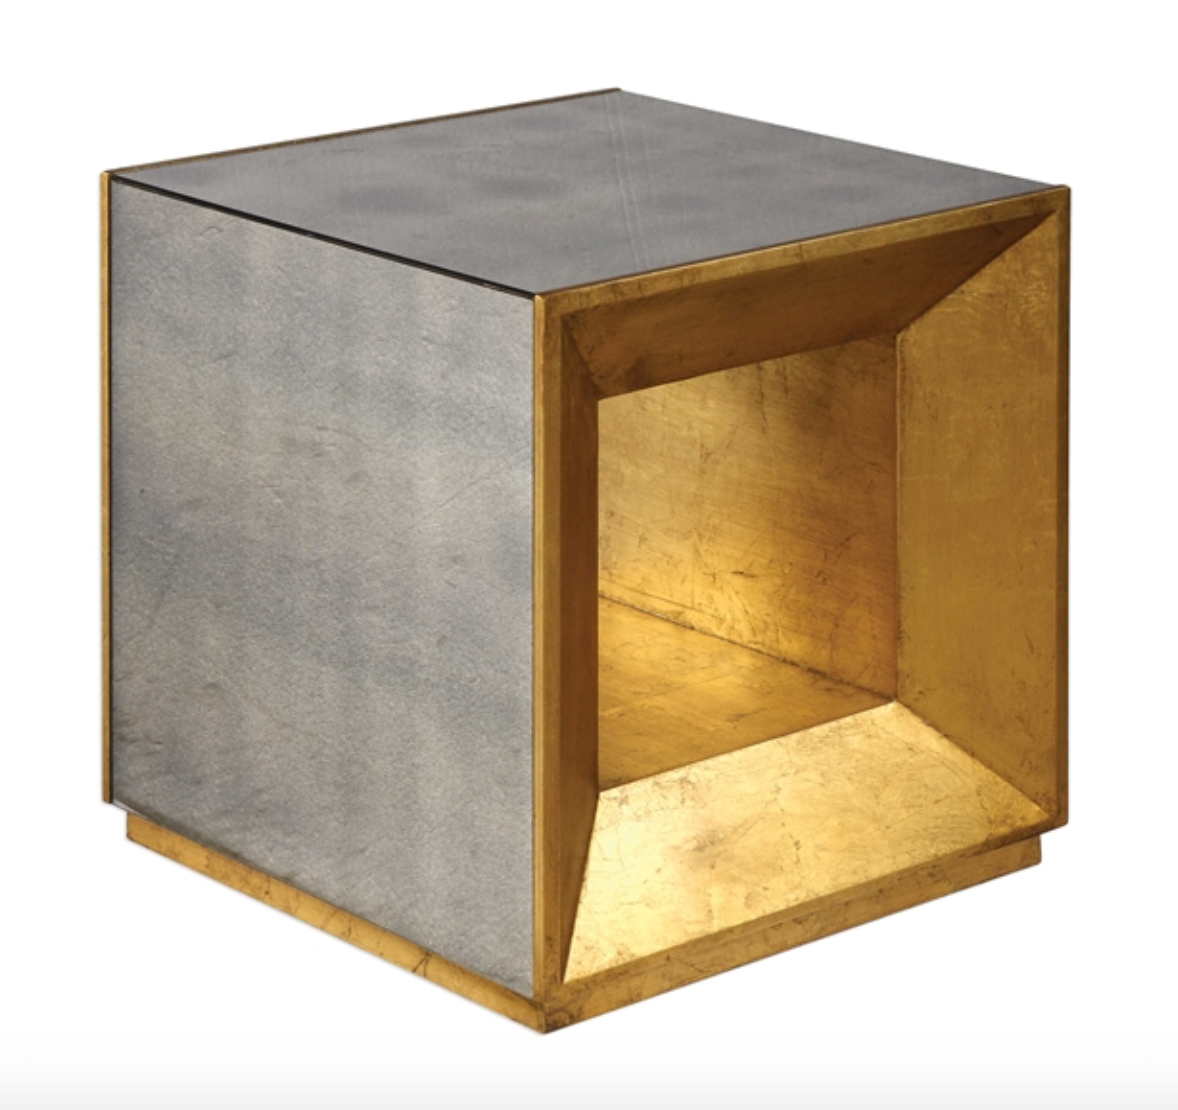 coffee table faceted with lightly antiqued mirror, accented with open beveled ends in antiqued gold leaf